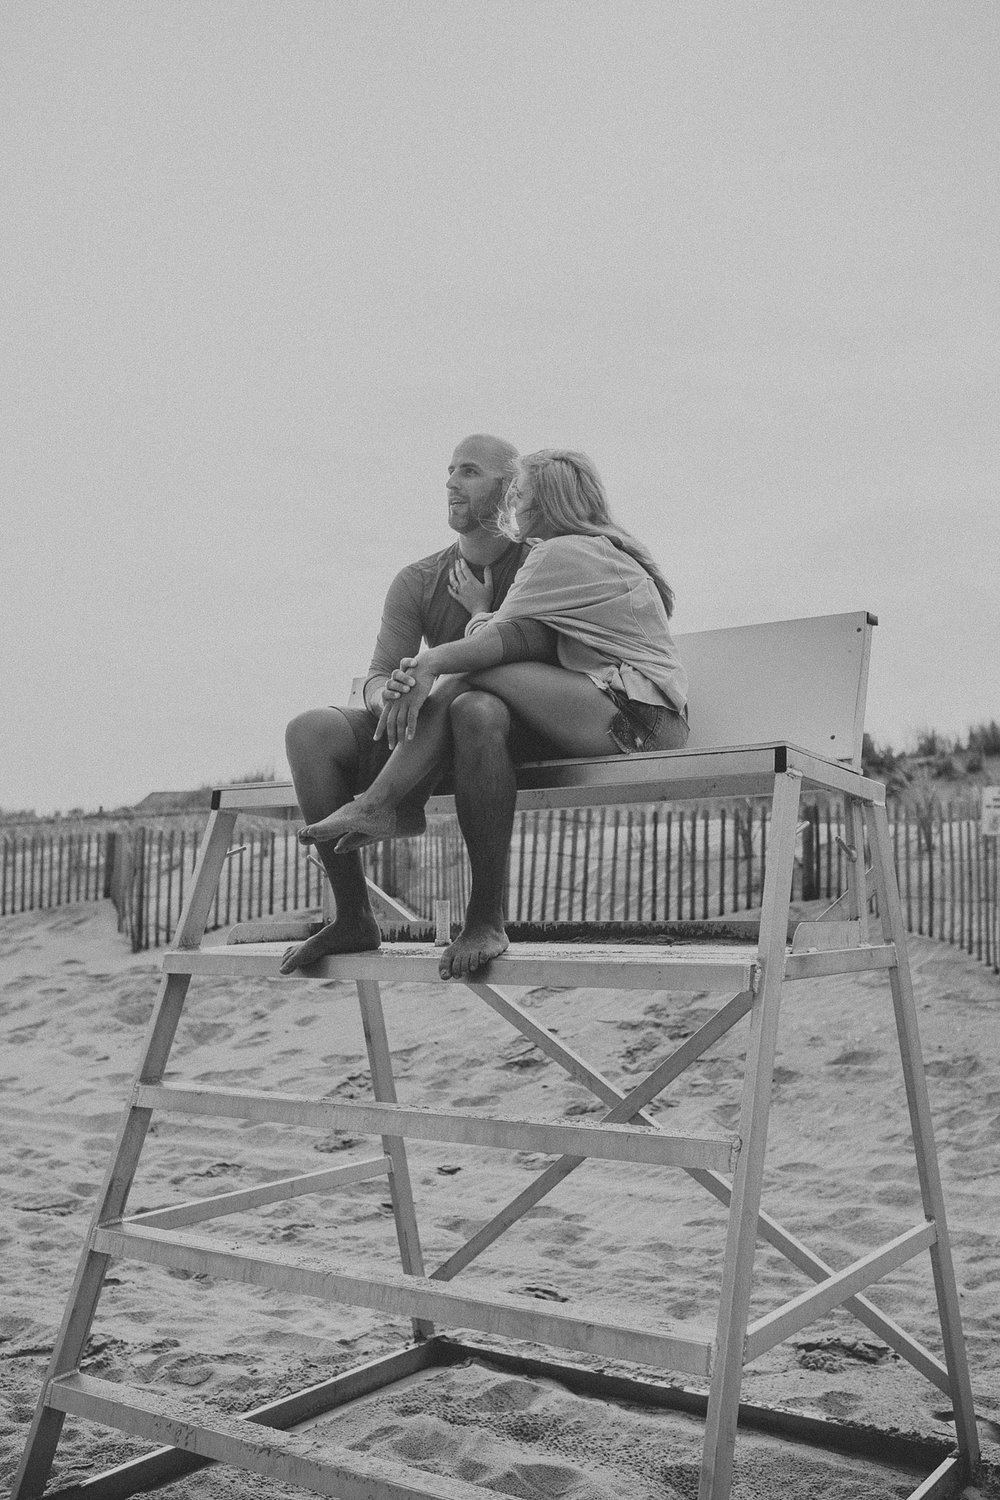 Couple looking out over the ocean on lifeguard stand in Stone Harbor beach New Jersey